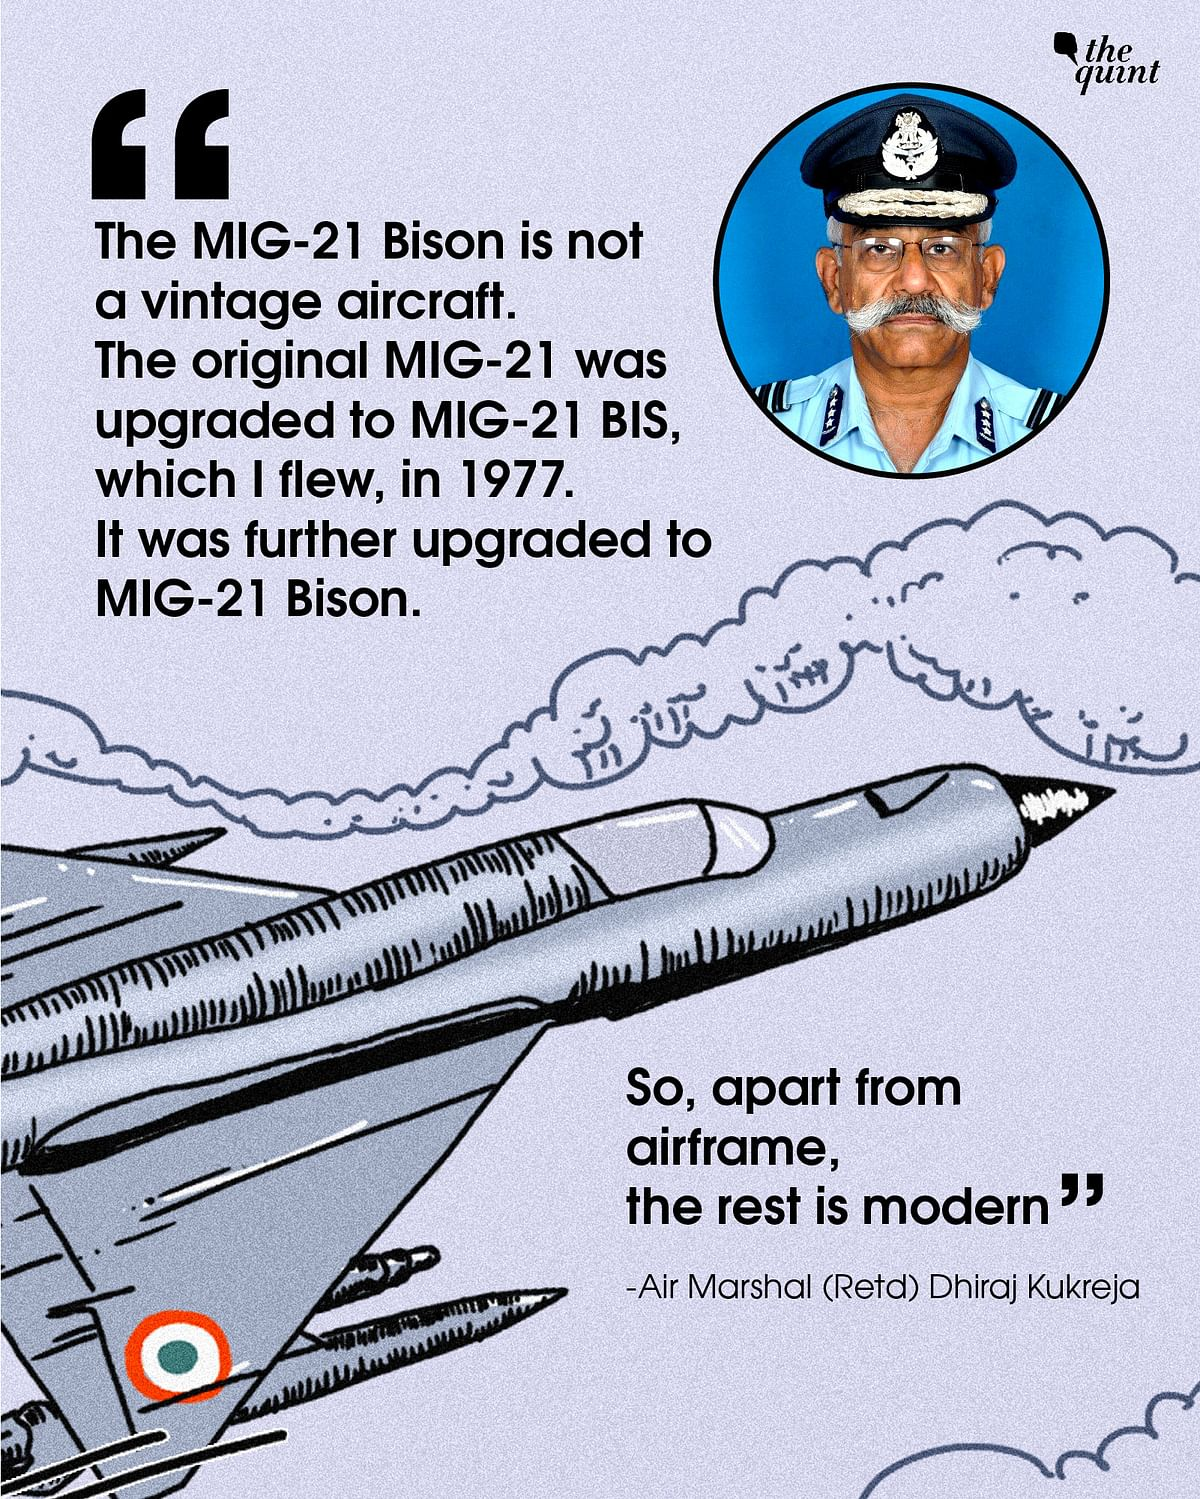 MiG-21 vs F-16: Is the Russian Fighter Really A Vintage Machine?